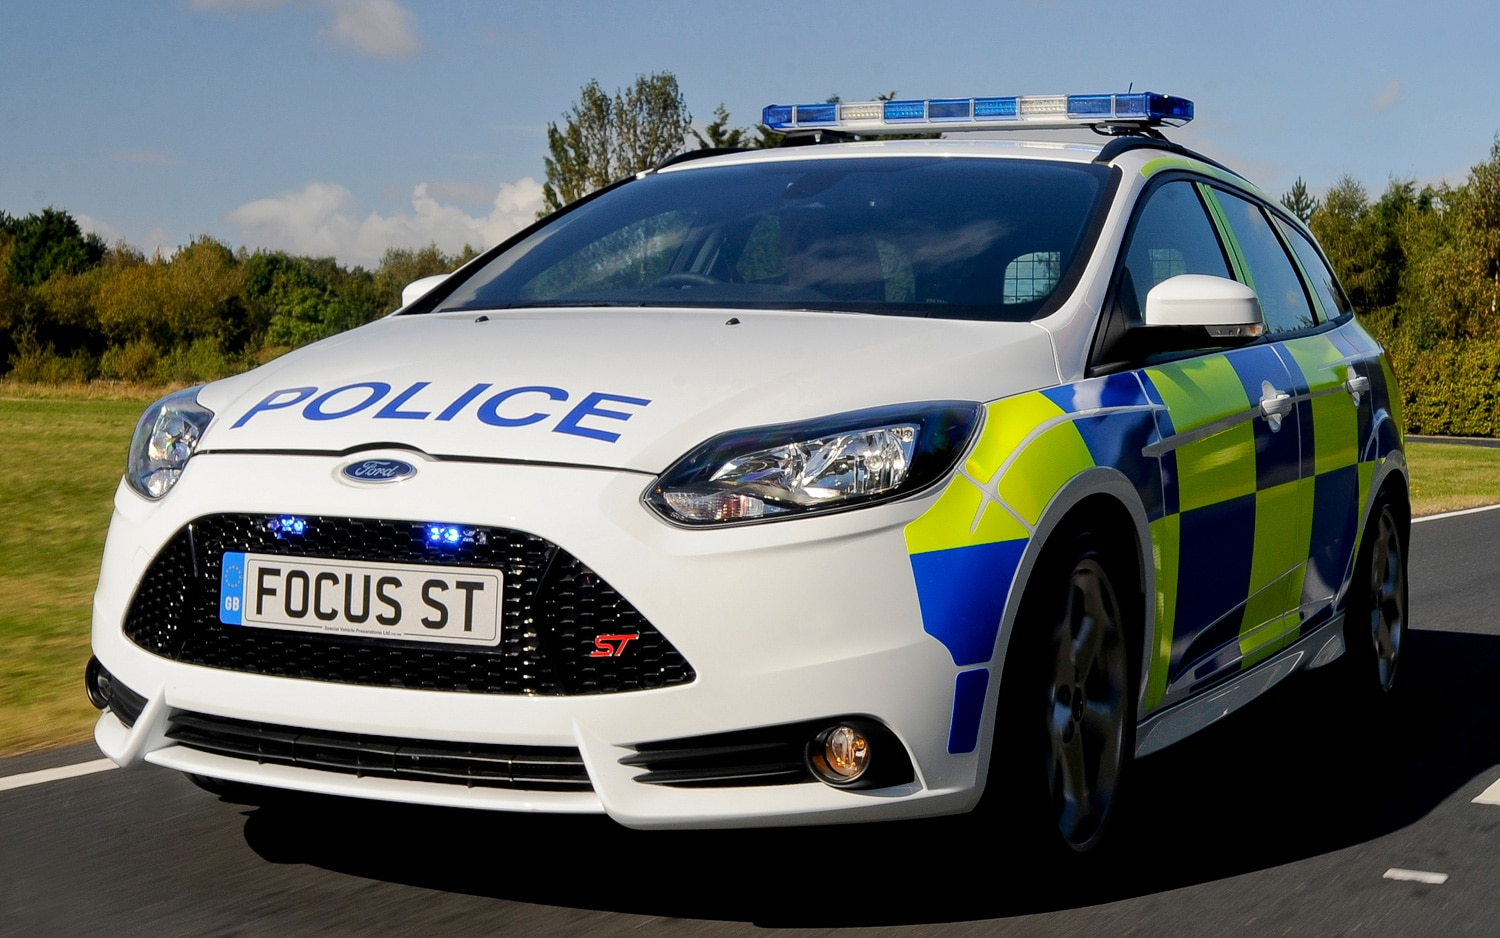 2012 Ford Focus ST Police Wagon Front View1